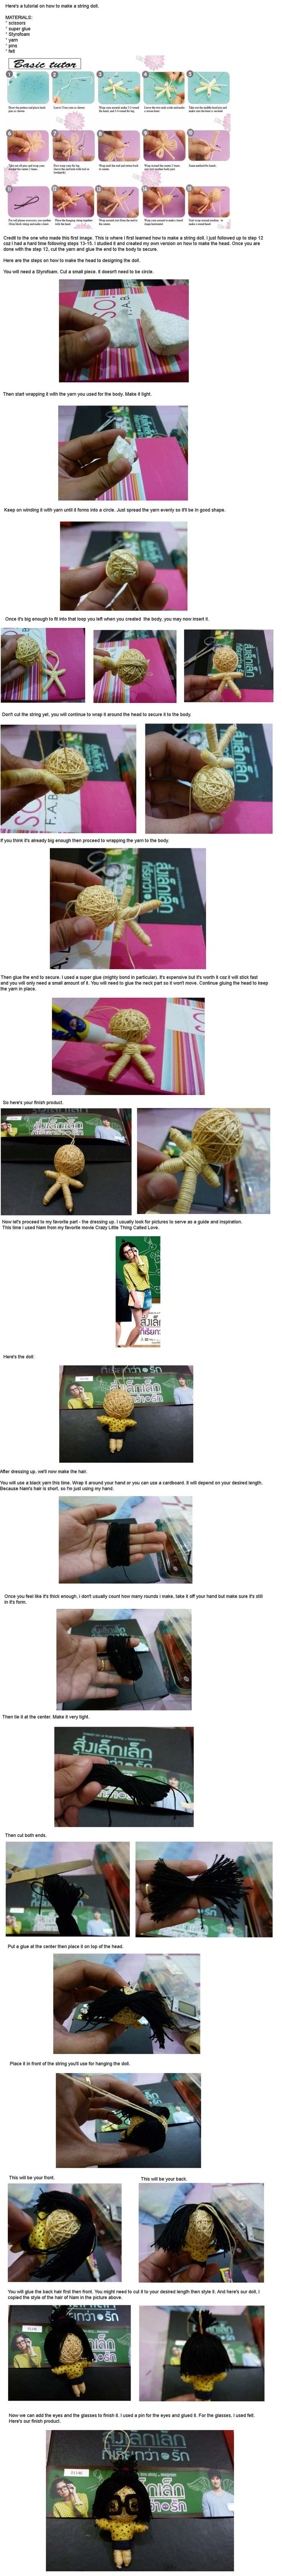 string doll tutorial by Em-Ar-Ae.deviantart.com on @DeviantArt